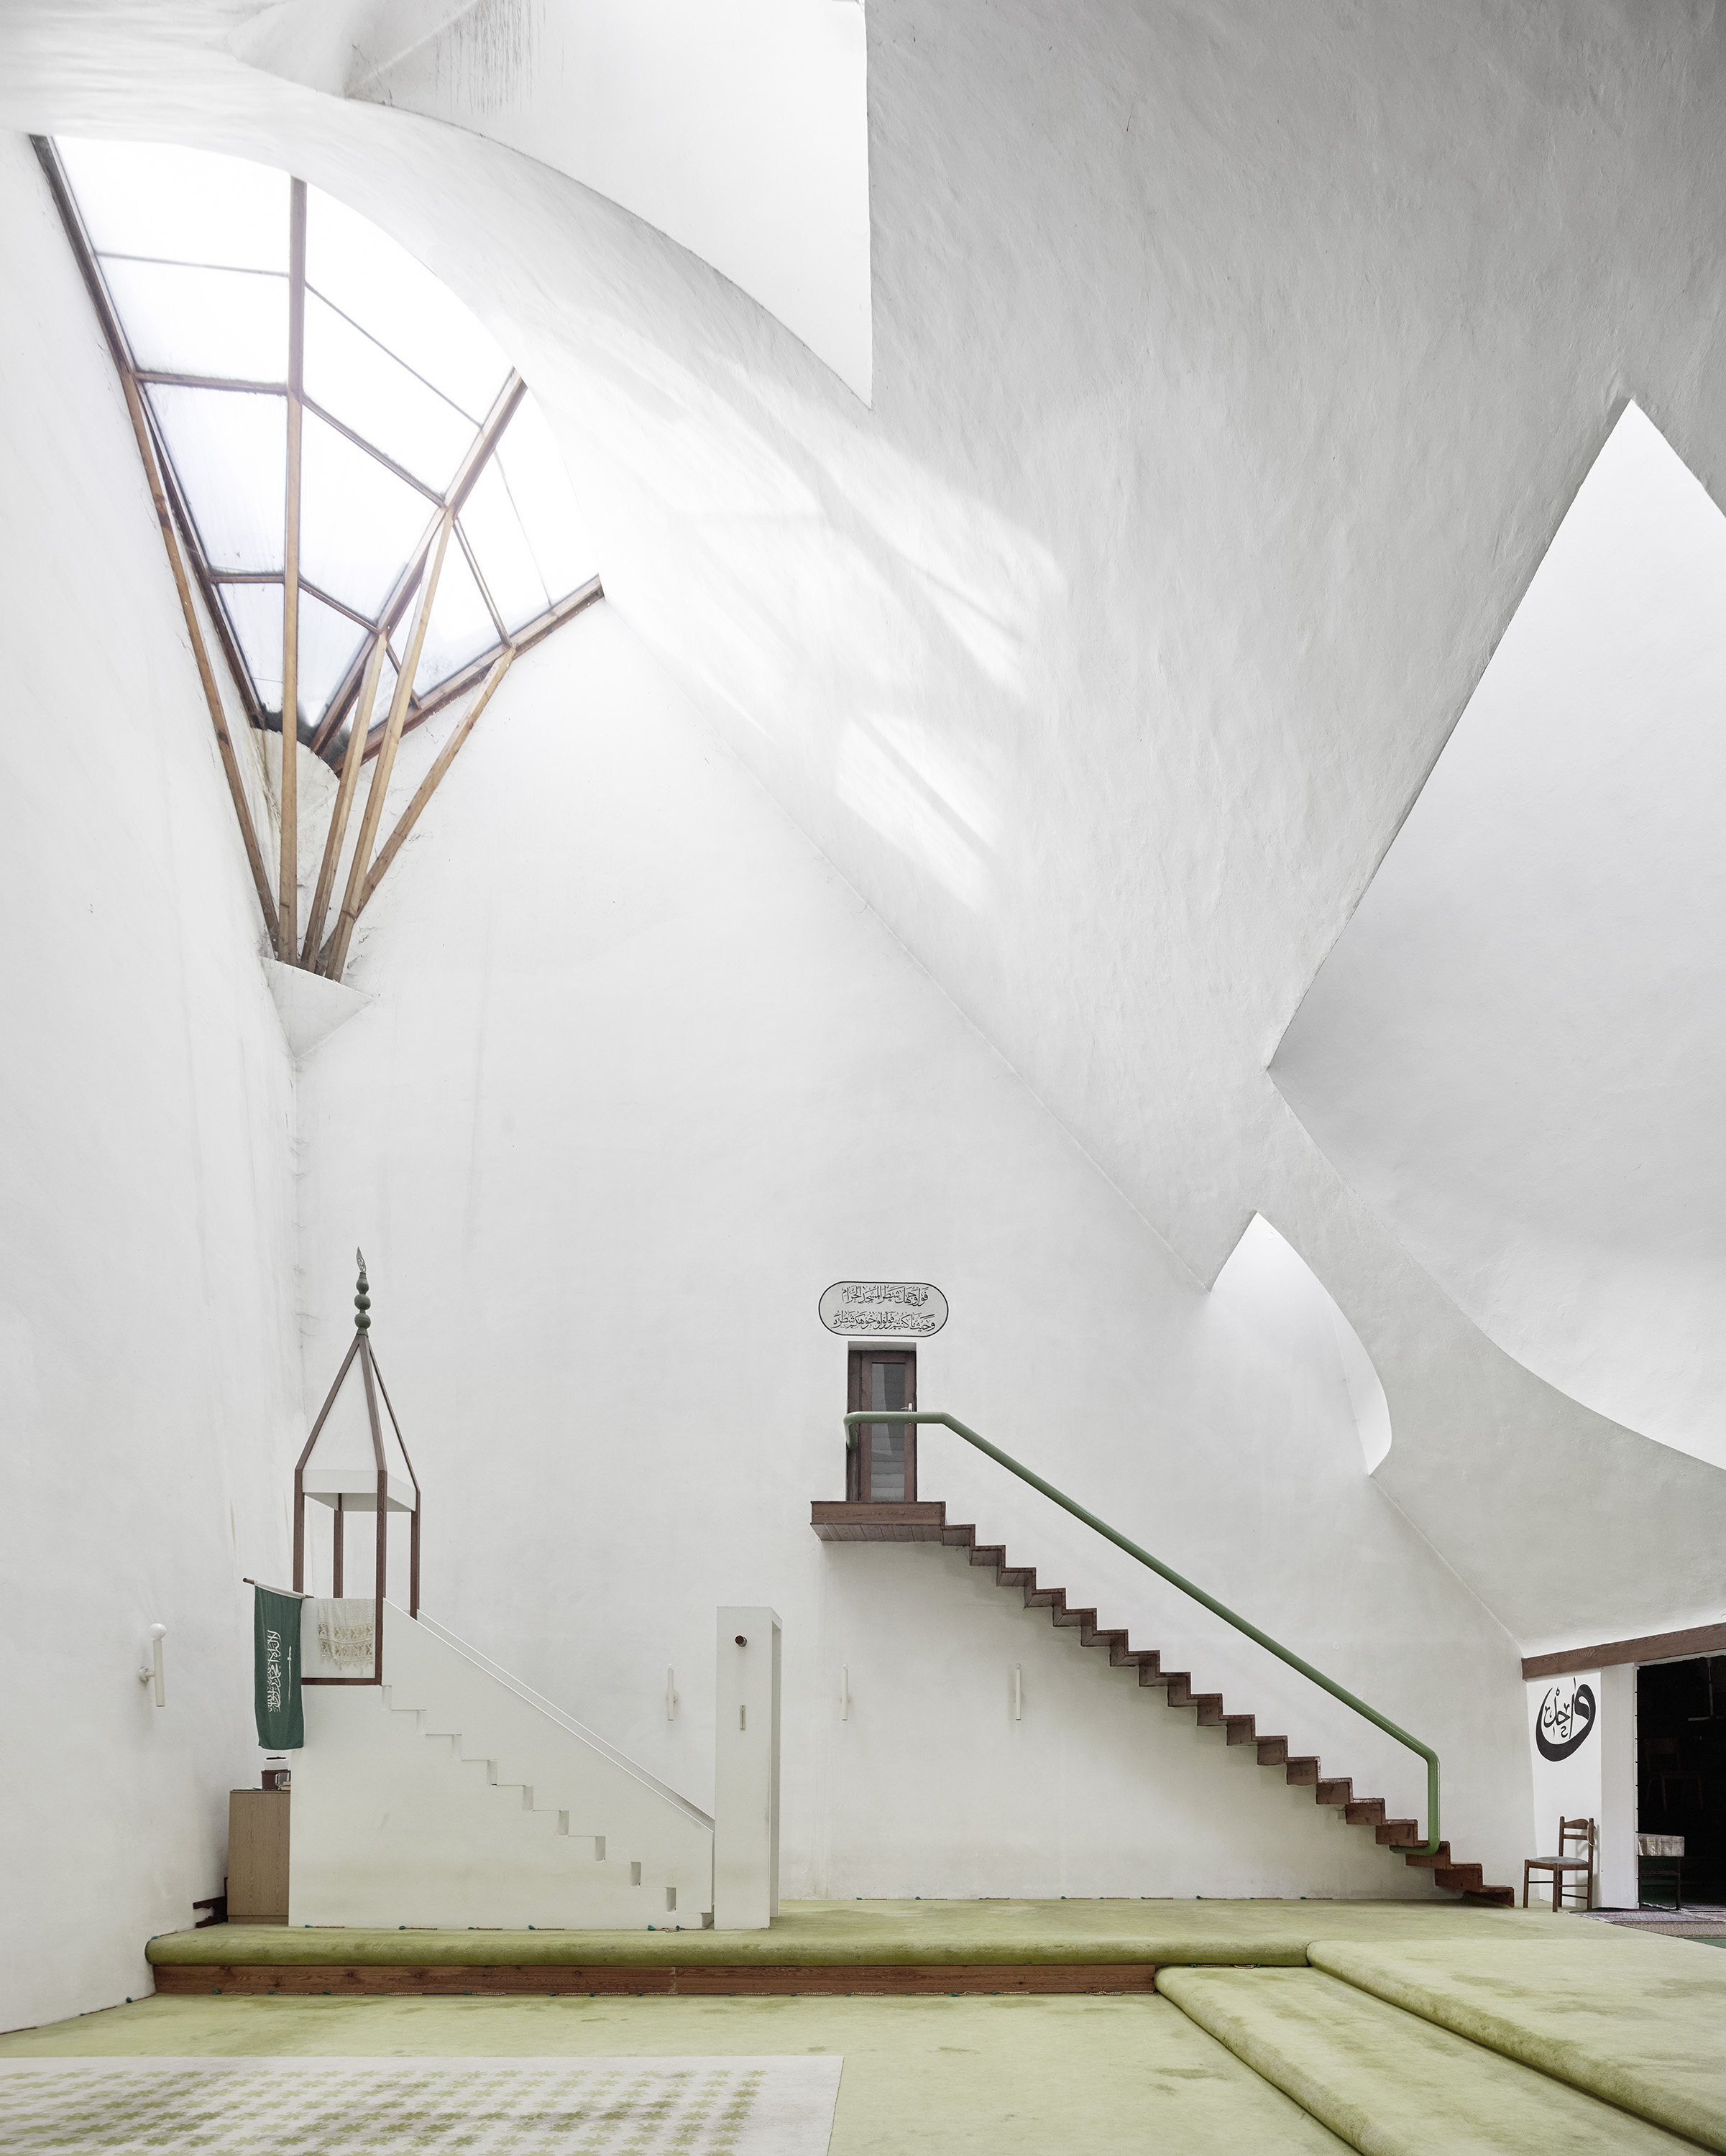 Zlatko Ugljen. Šerefudin White Mosque. 1969–79. Visoko, Bosnië and Herzegovina. Interieur. Foto: Valentin Jeck, commissioned by The Museum of Modern Art, 2016